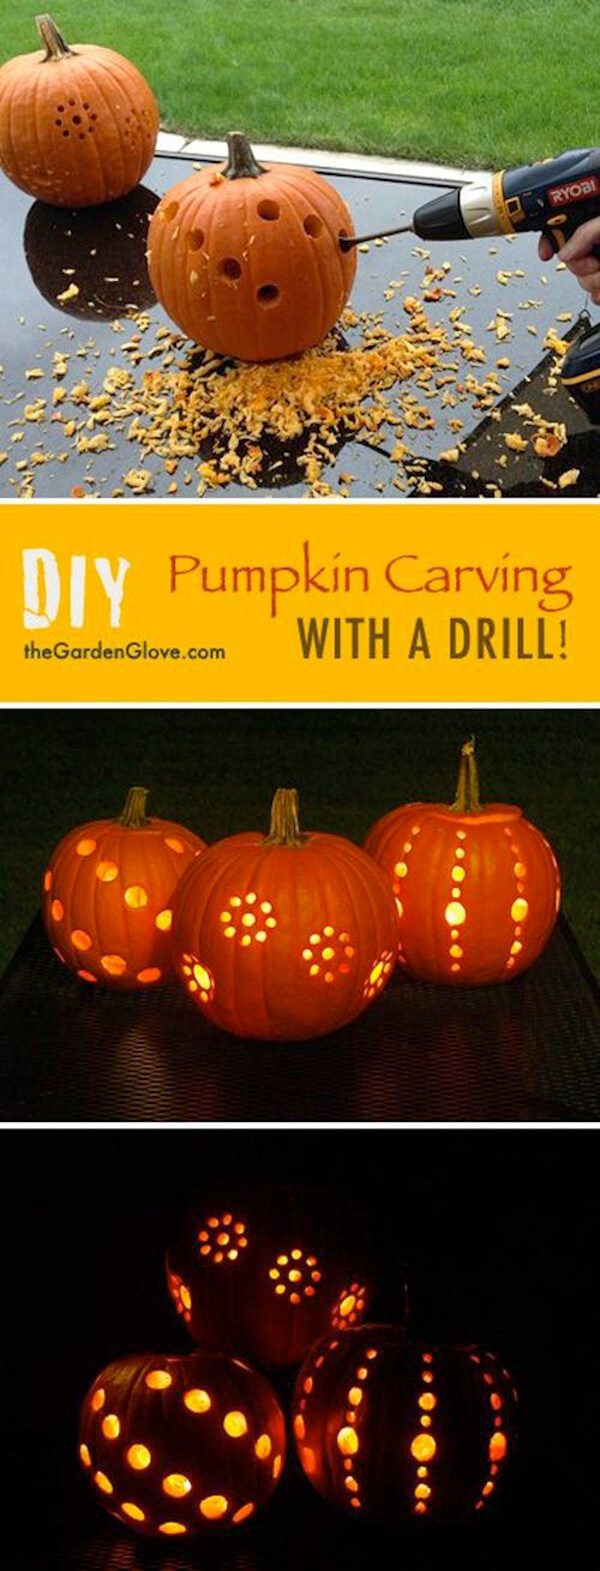 DIY Pumpkin Carving Ideas: More Drilling Ideas